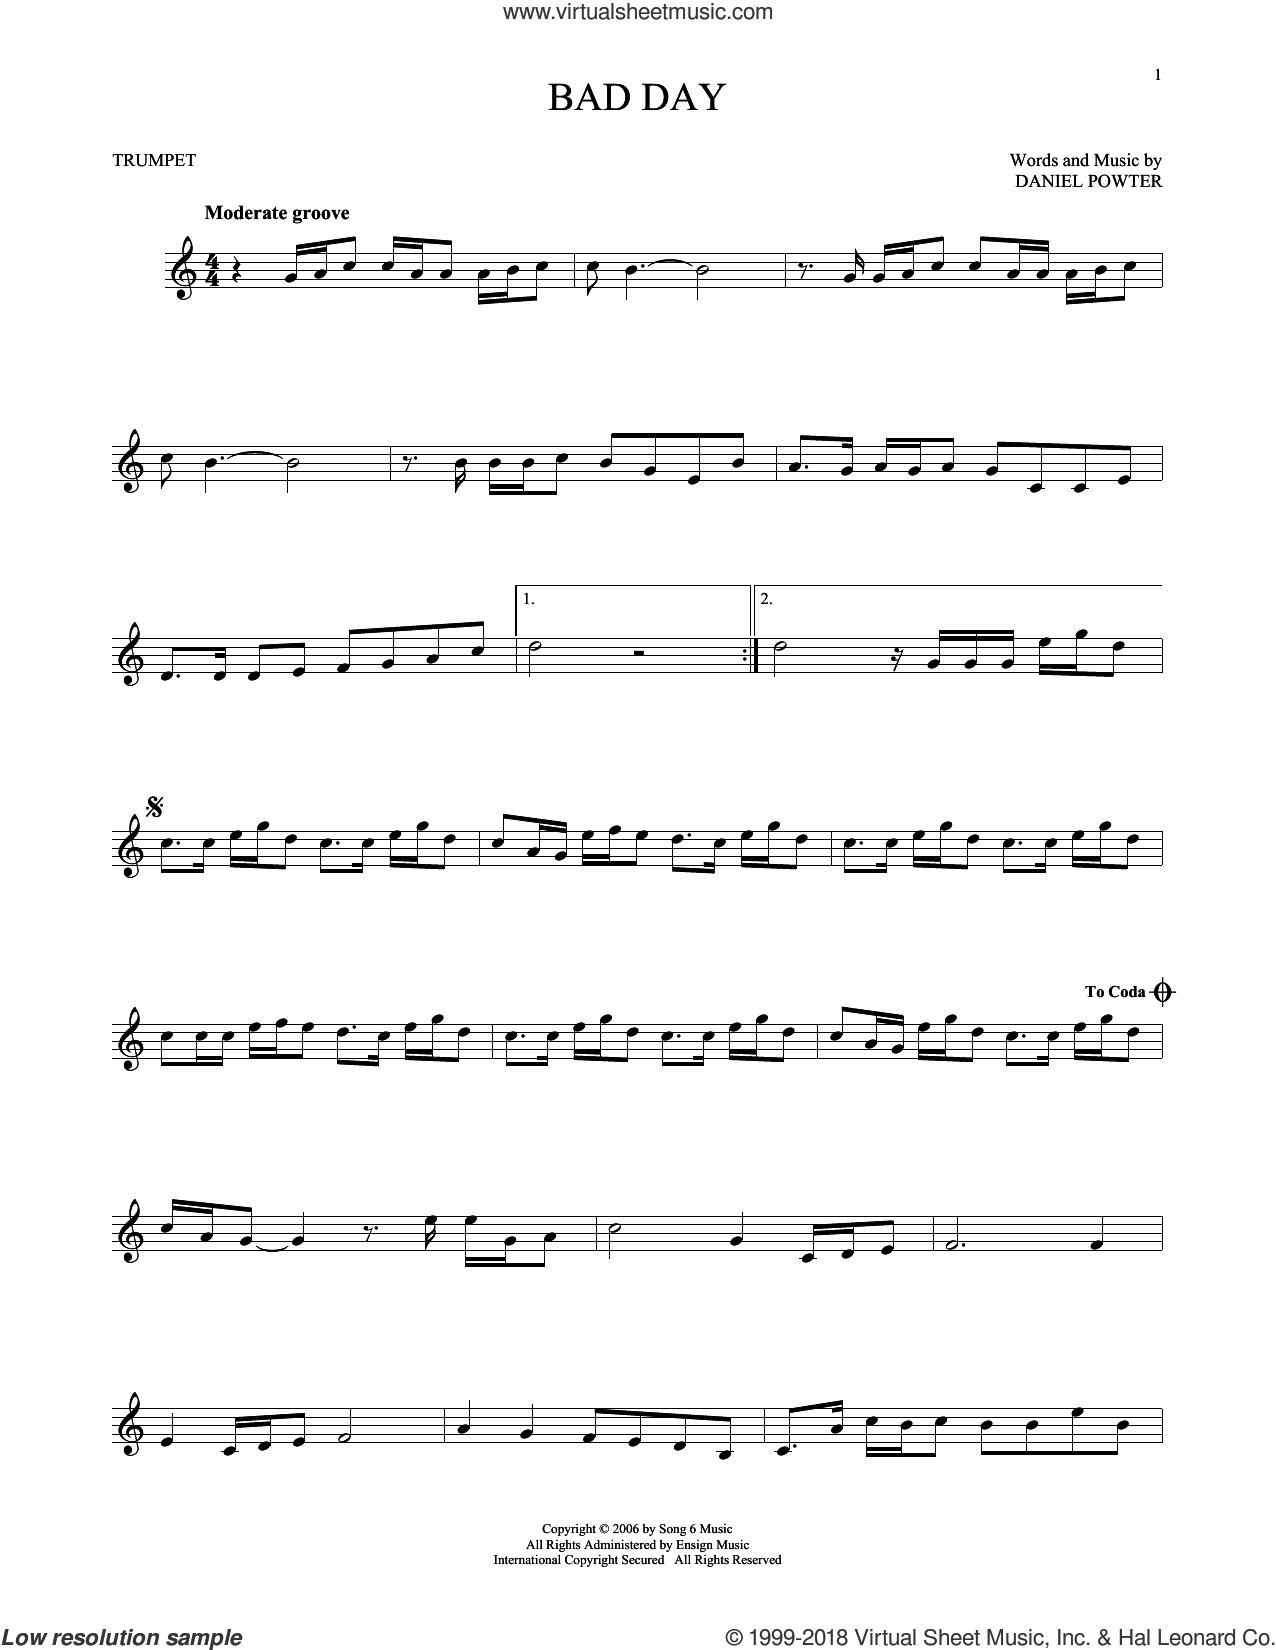 Bad Day sheet music for trumpet solo by Daniel Powter, intermediate skill level